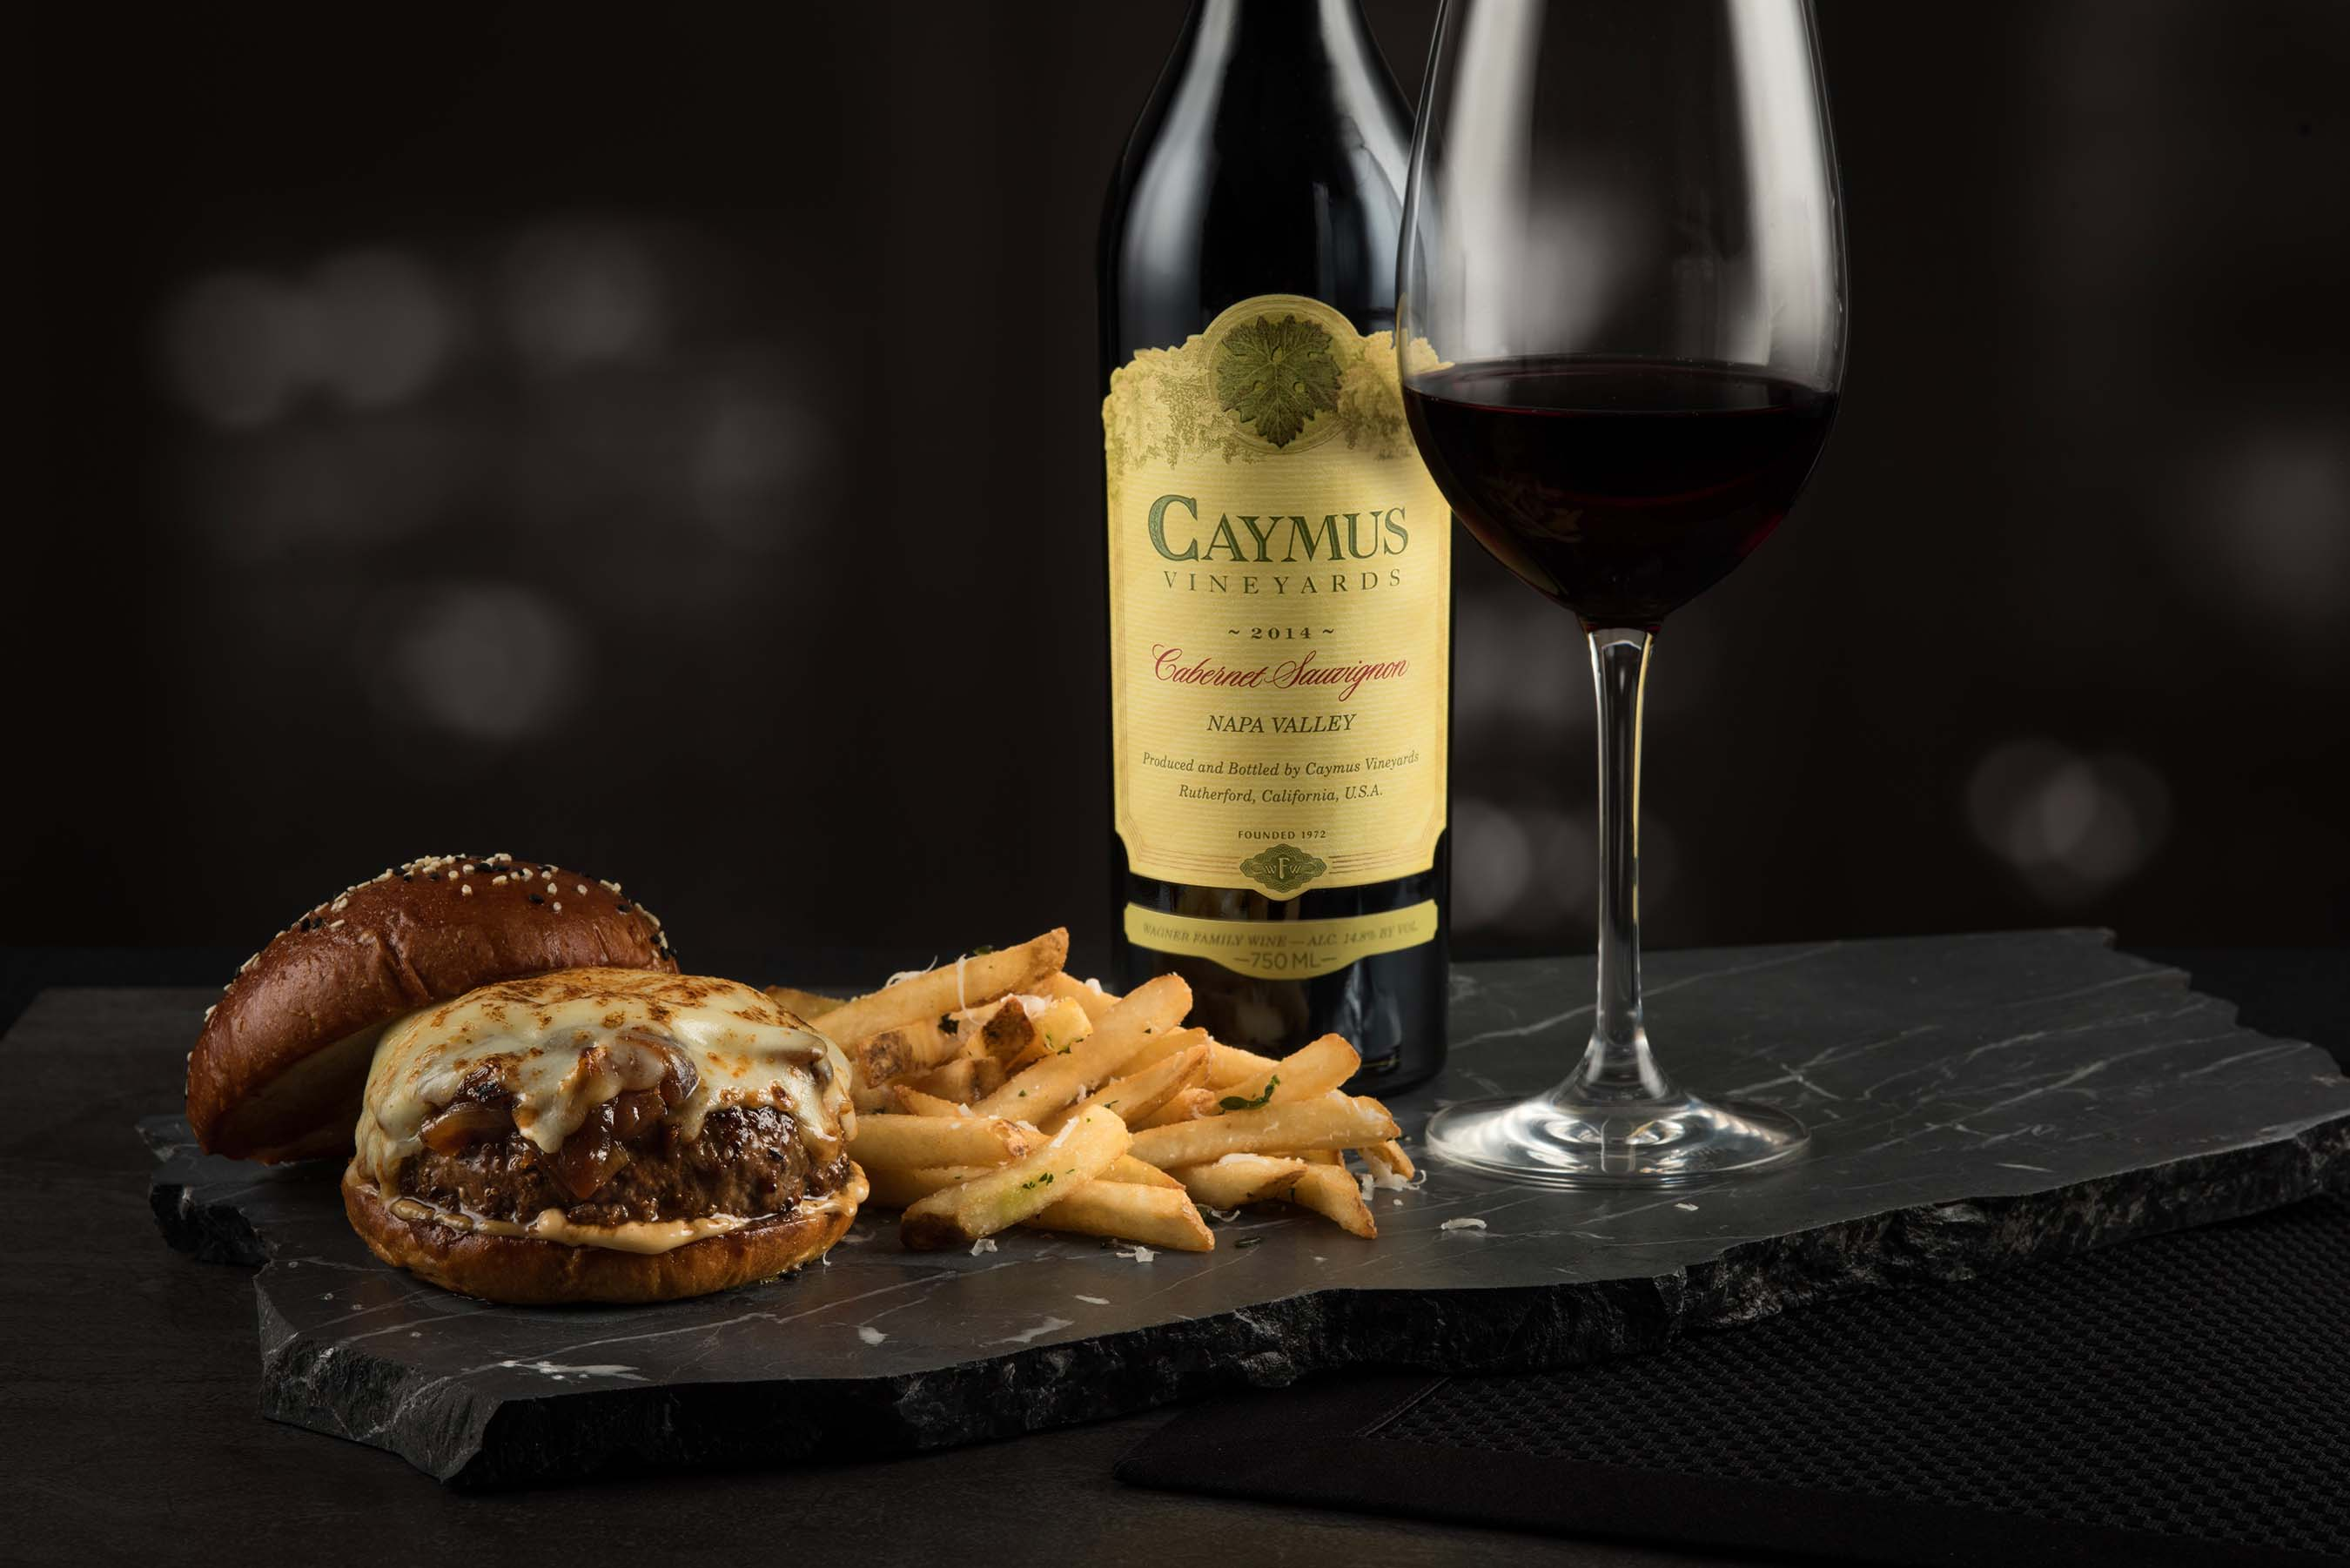 Wagyu Cheesburger with Caymus Cabernet Sauvignon